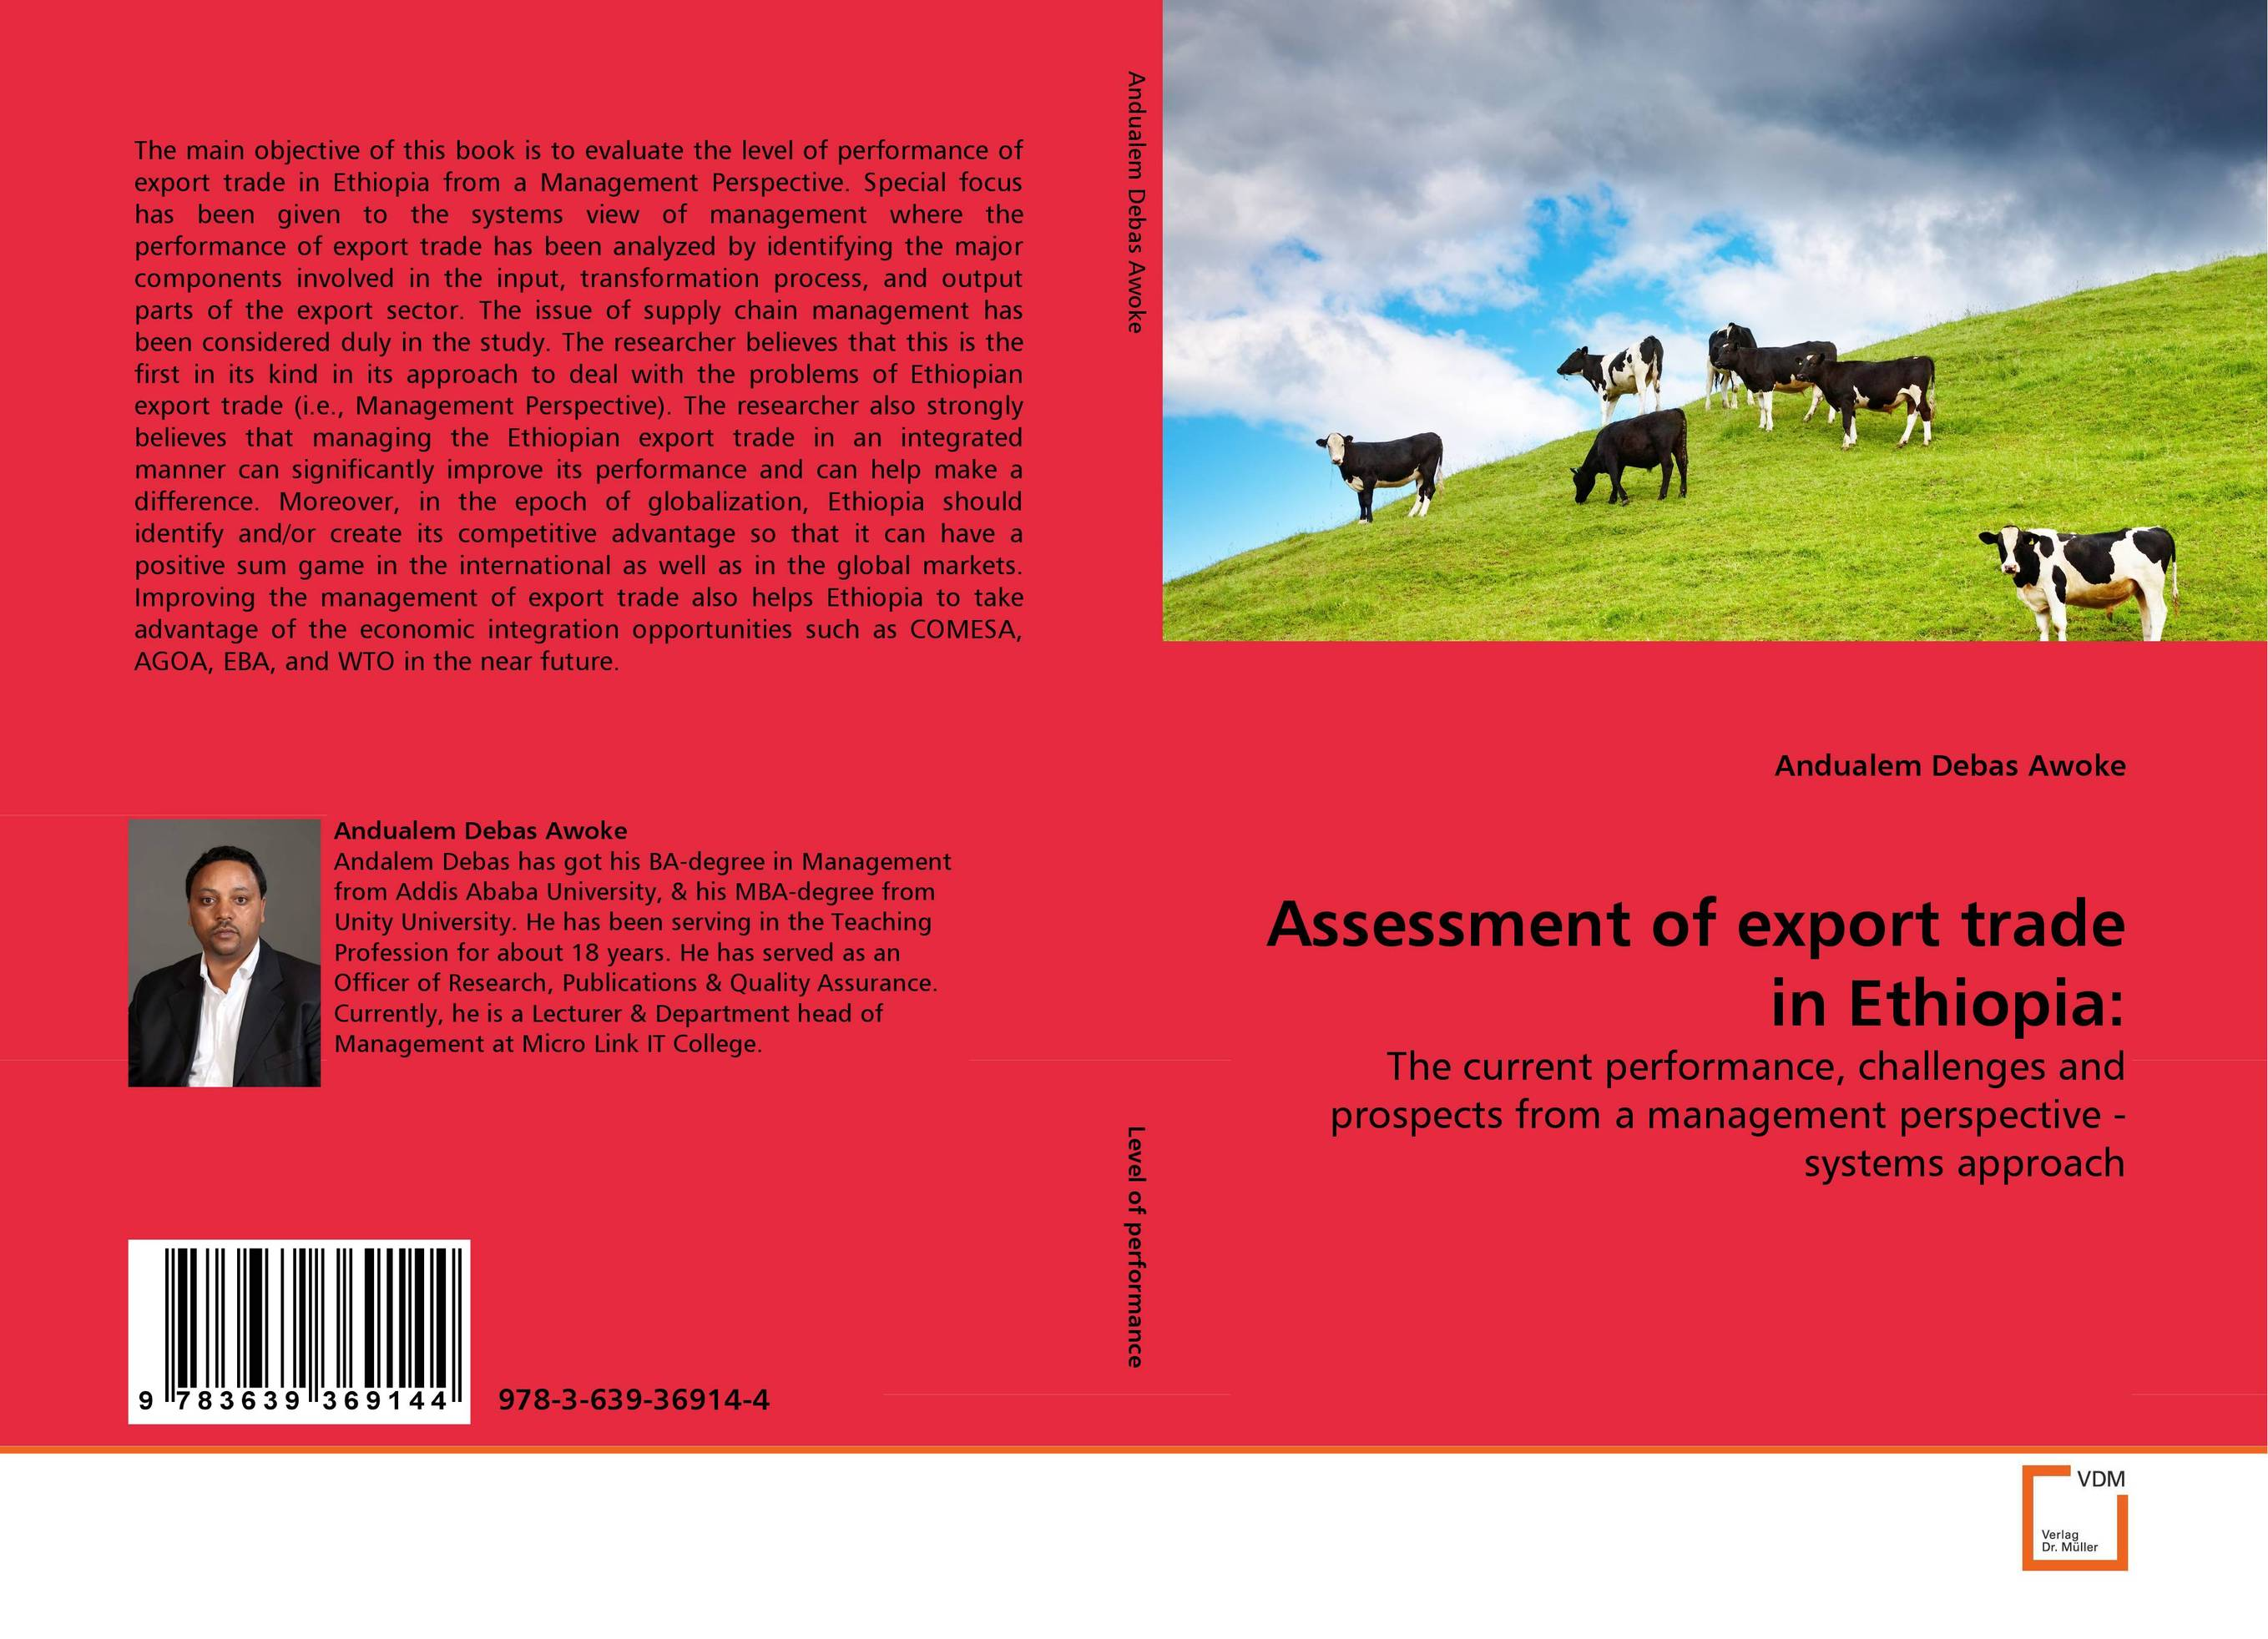 Assessment of export trade in Ethiopia: managing the store